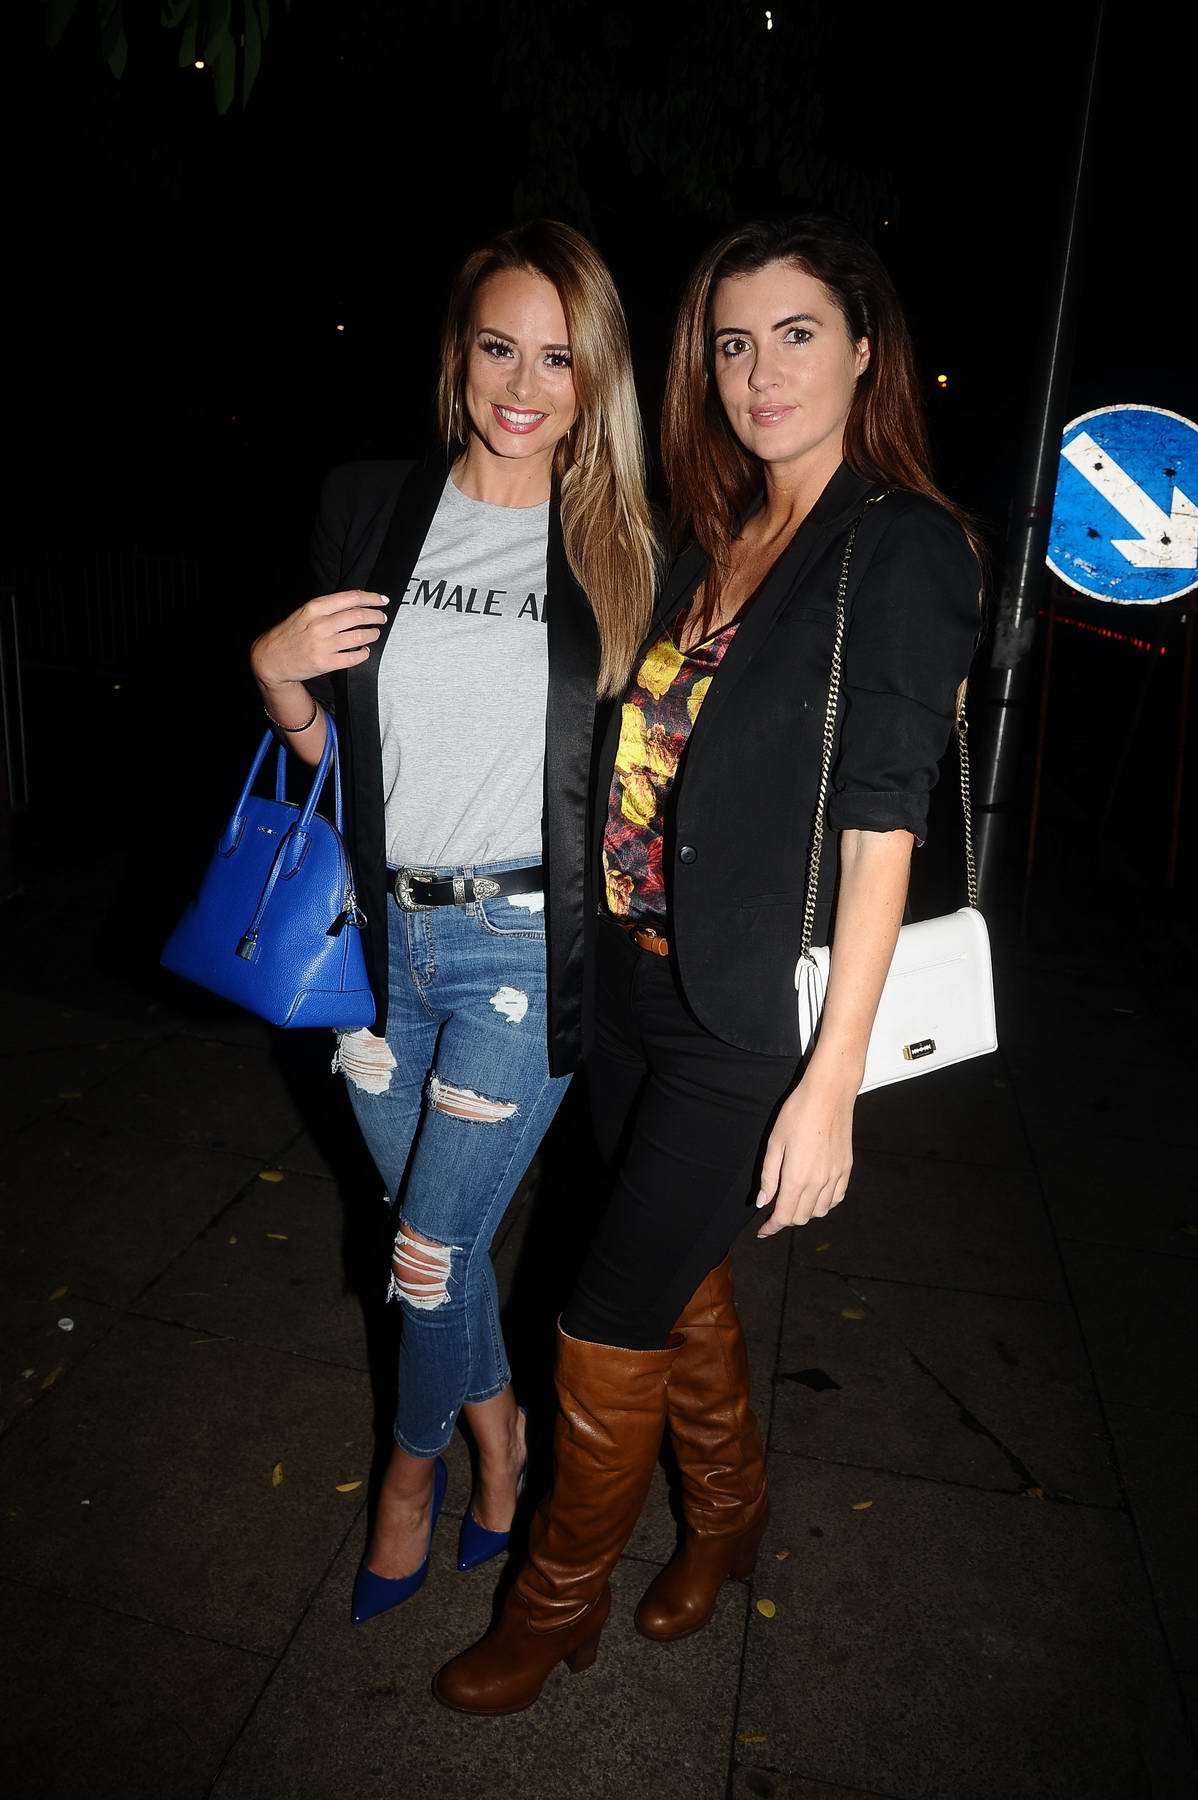 Rhian Sugden and Helen Woods attend the El Diablo Bar launch on Deansgate Locks in Manchester, UK